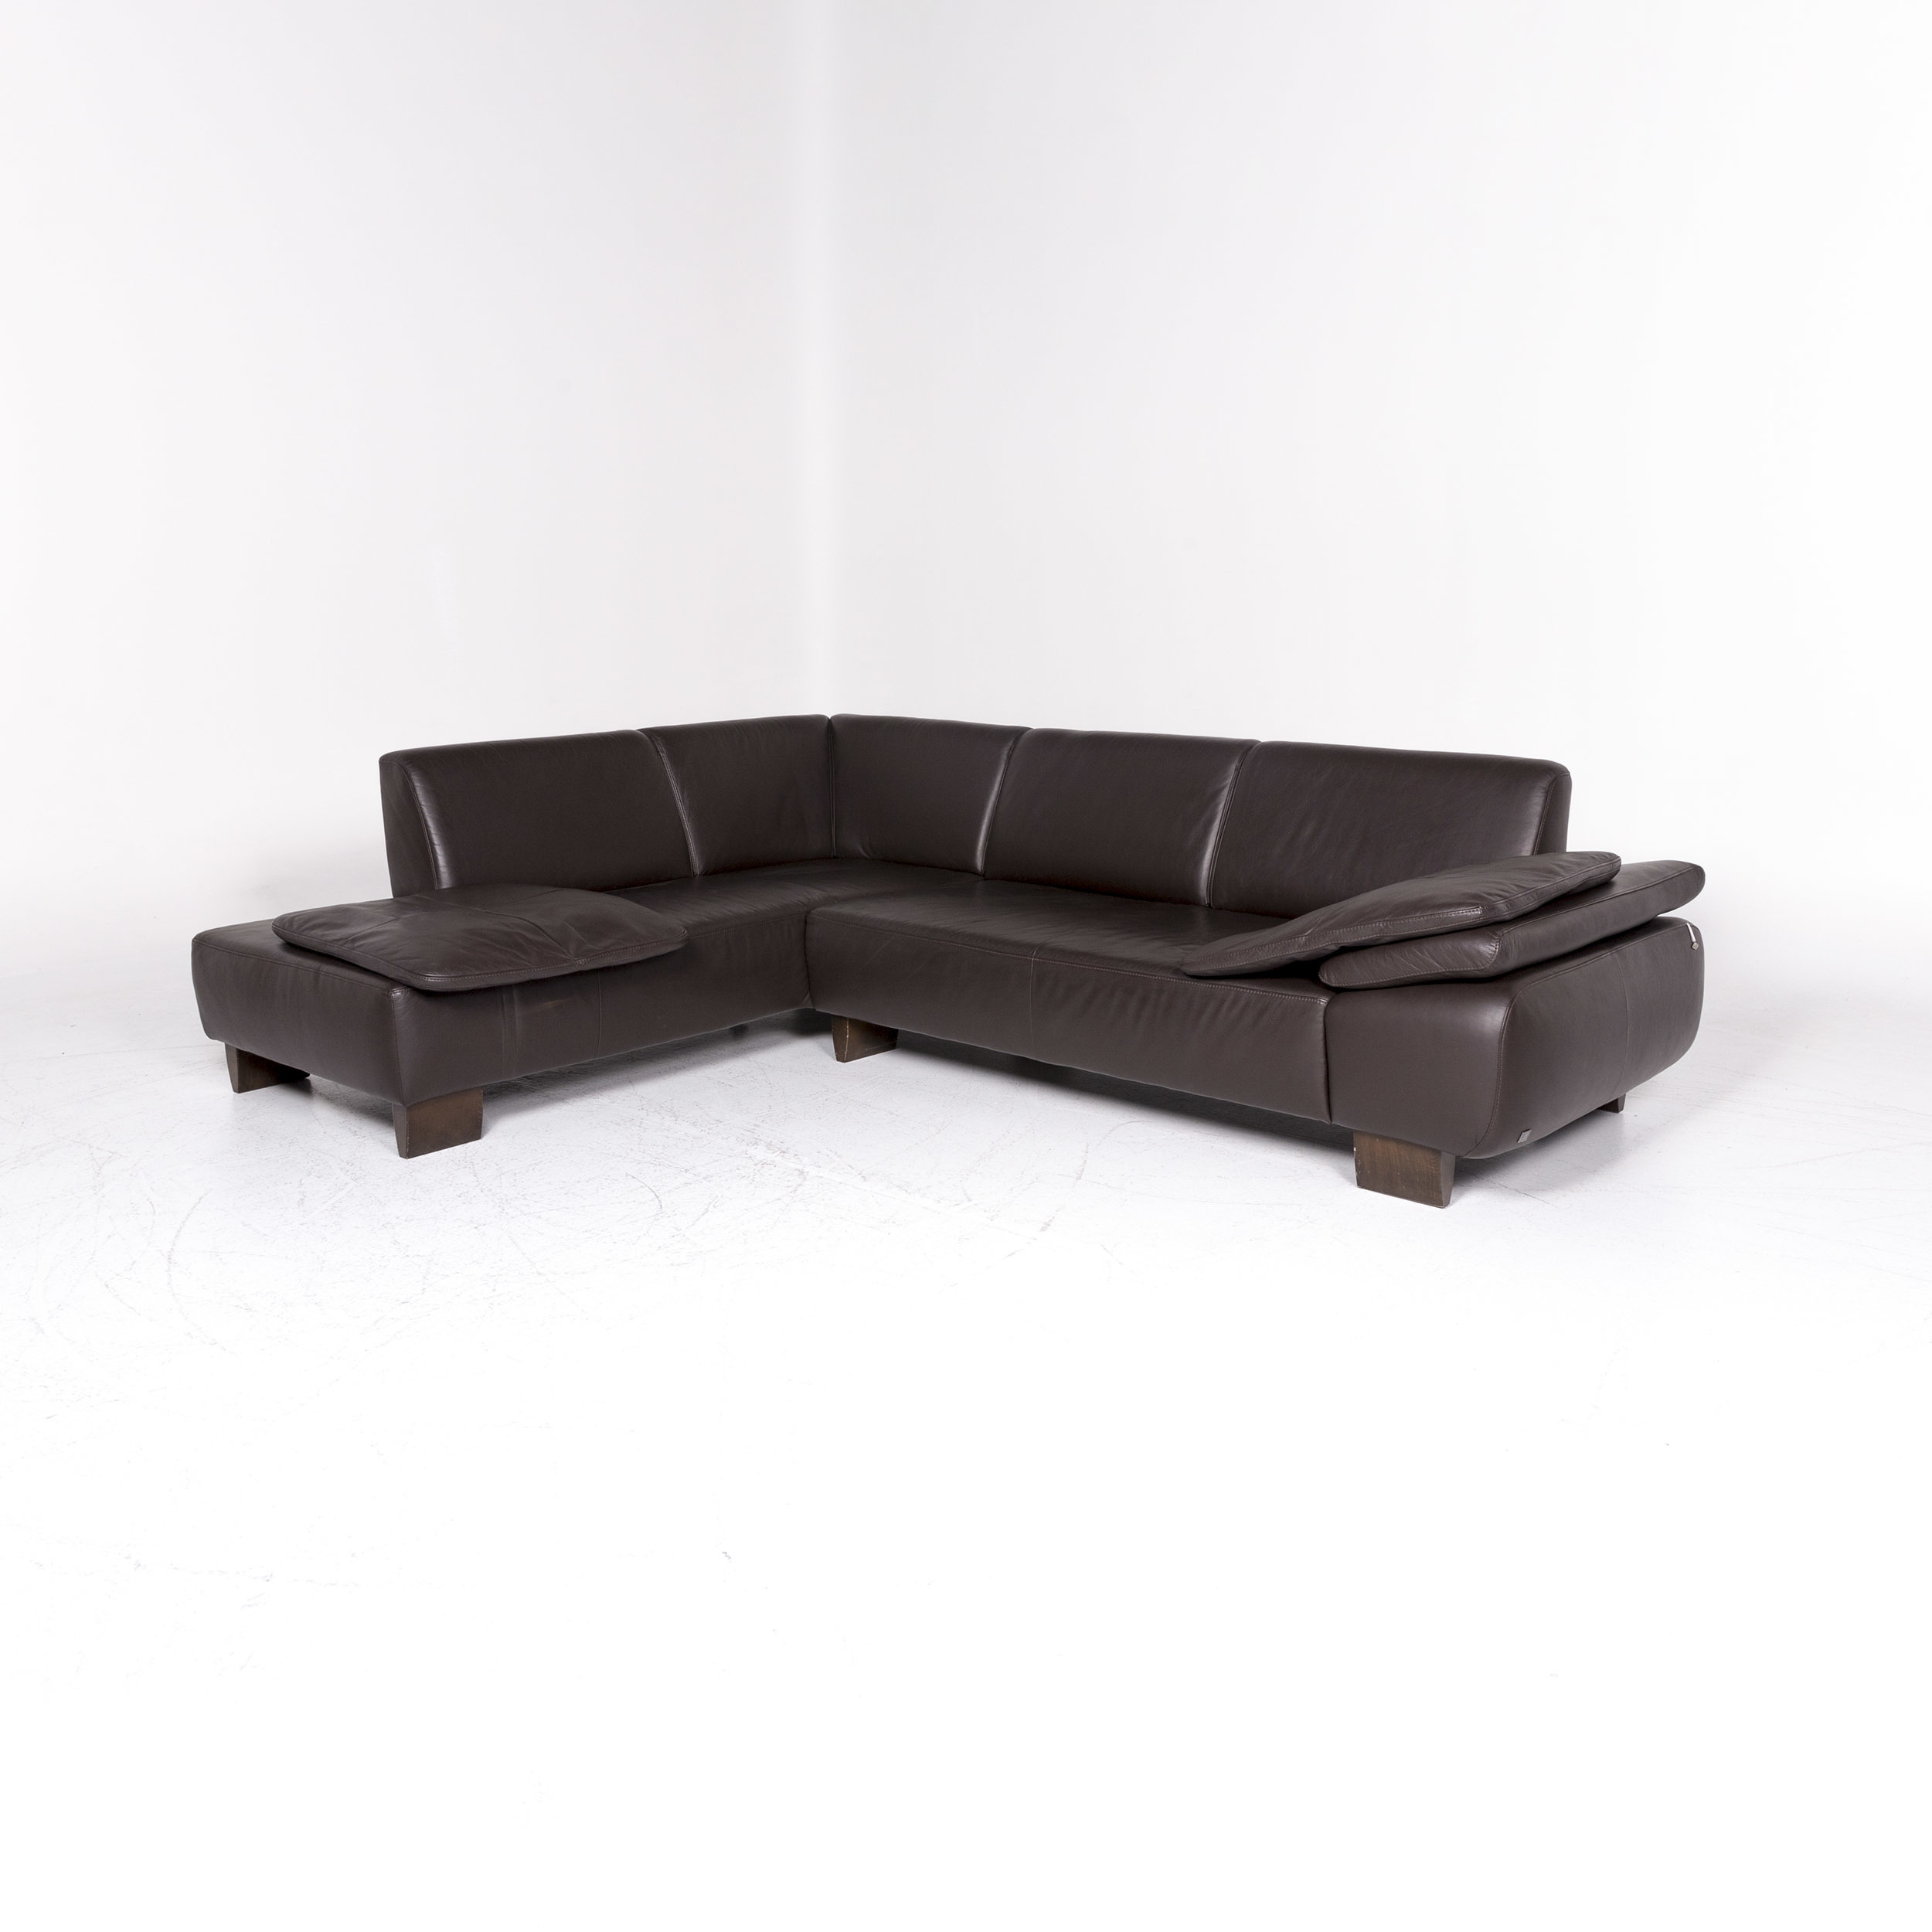 Willi Schillig Ecksofa Longlife Leder Willi Schillig Designer Leather Corner Sofa Brown Sofa Couch 9076